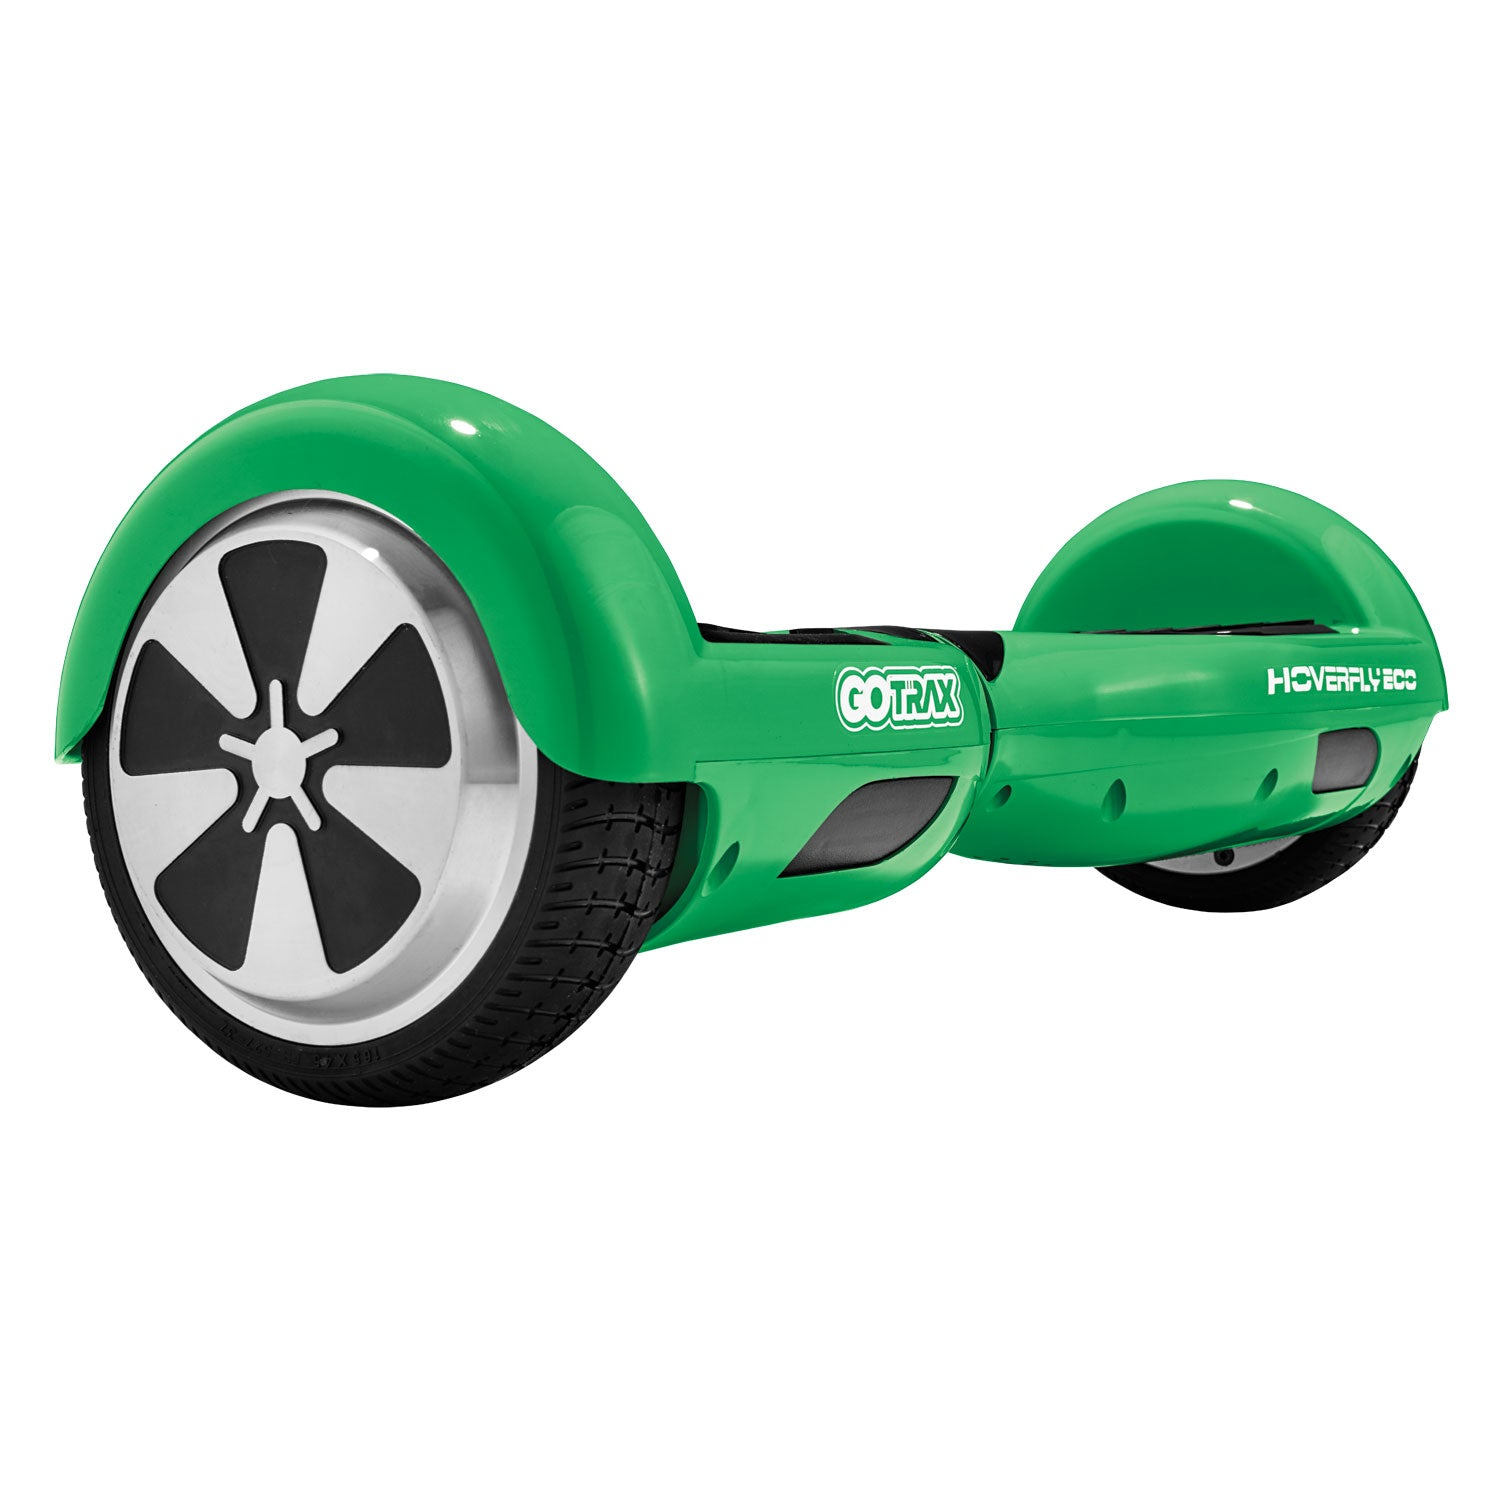 Green hoverfly eco hoverboard